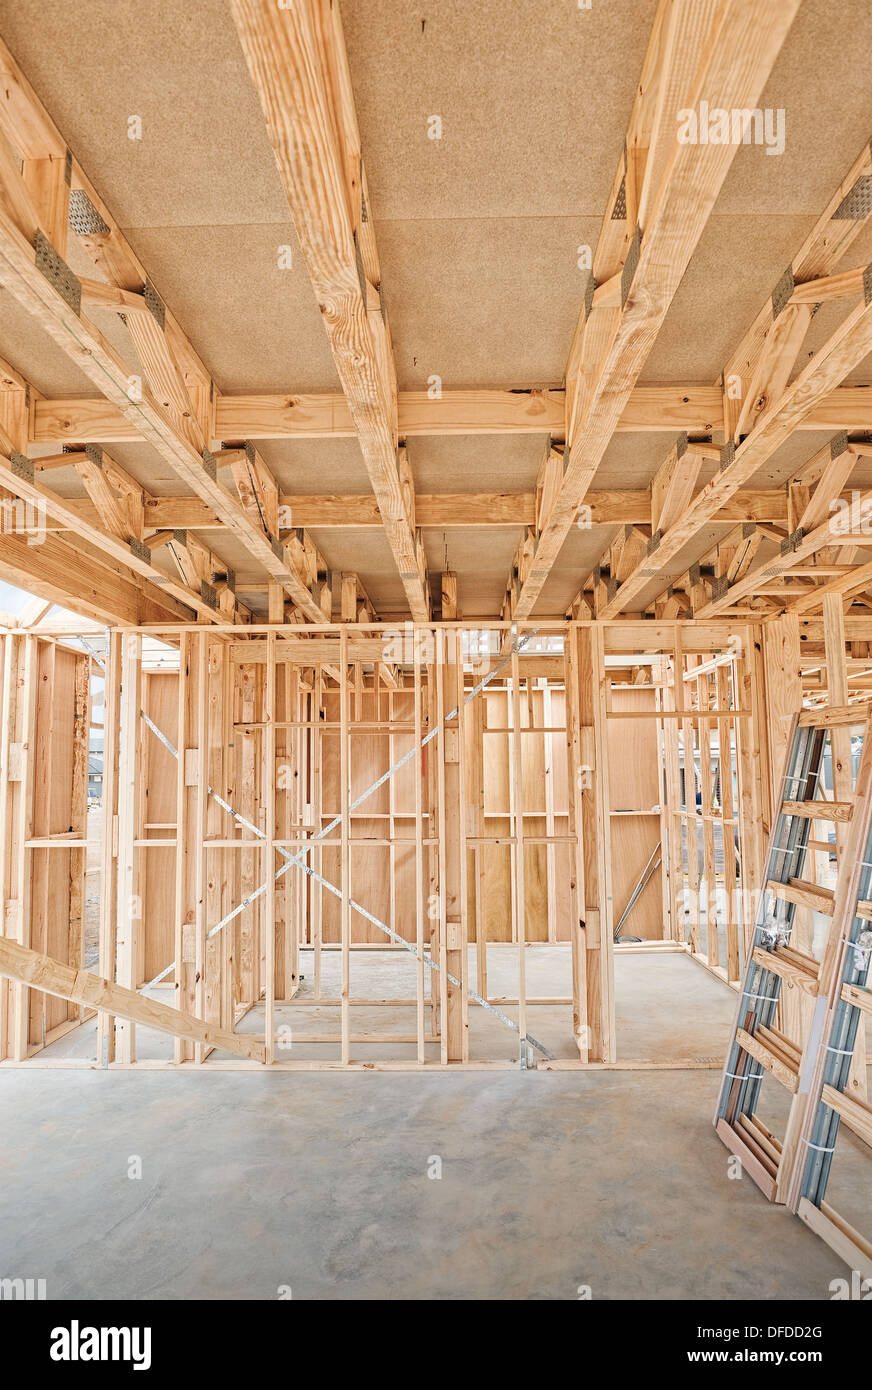 Ceiling Wood Wooden Construction New Stockfotos & Ceiling Wood ...